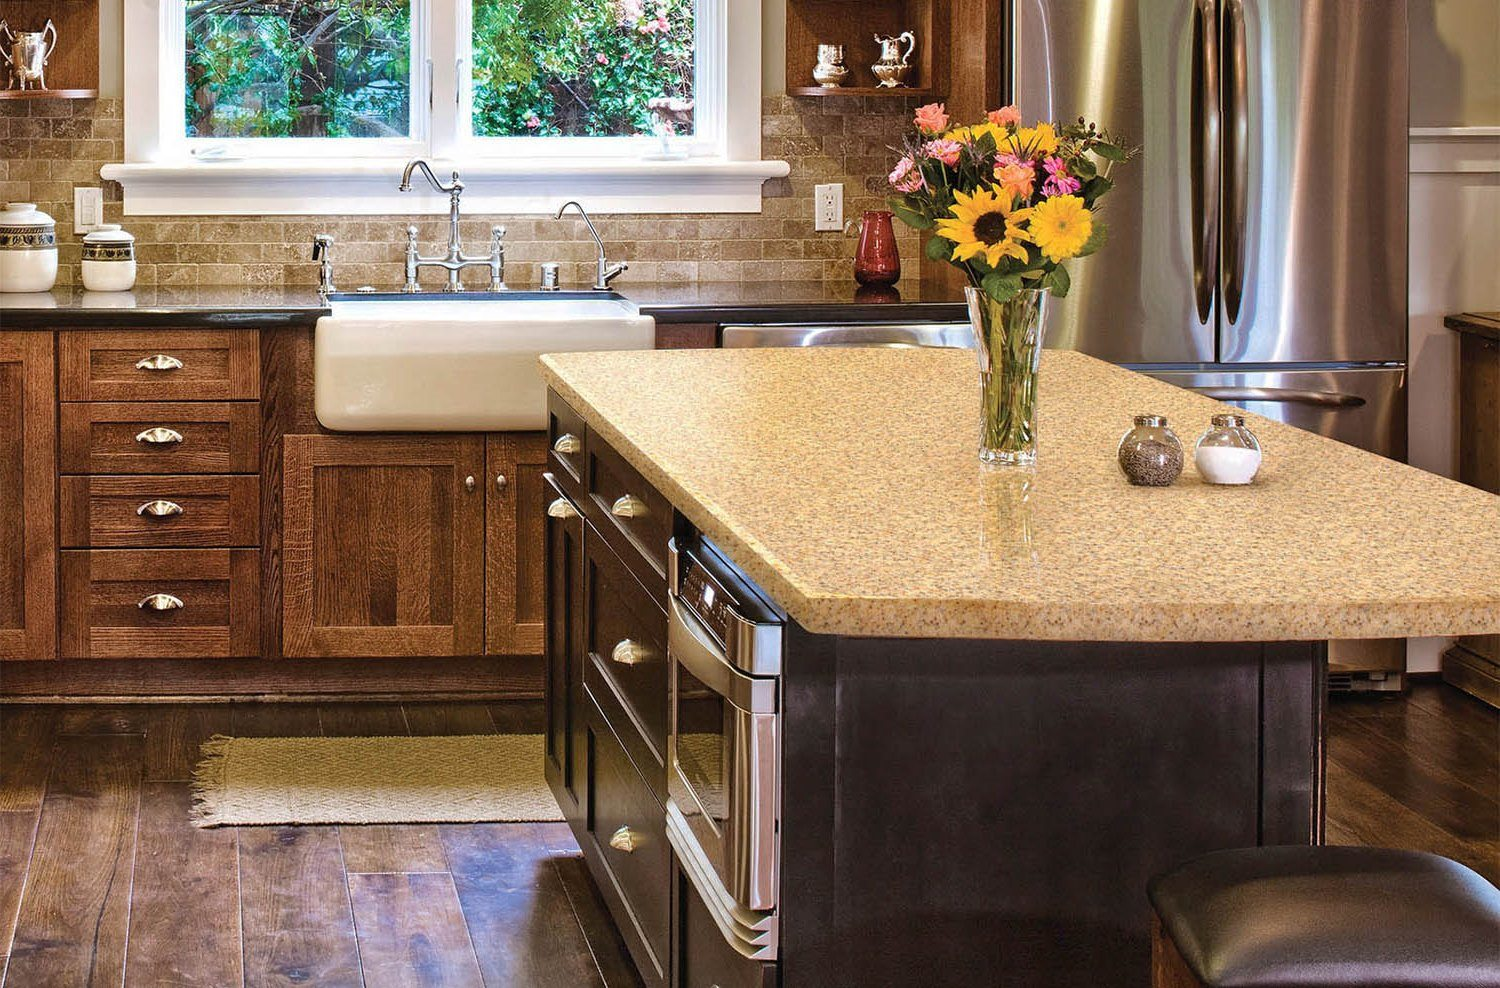 Dark wooden kitchen furniture with touch of French Provence in the form of mortise ceramic sink with classic taps